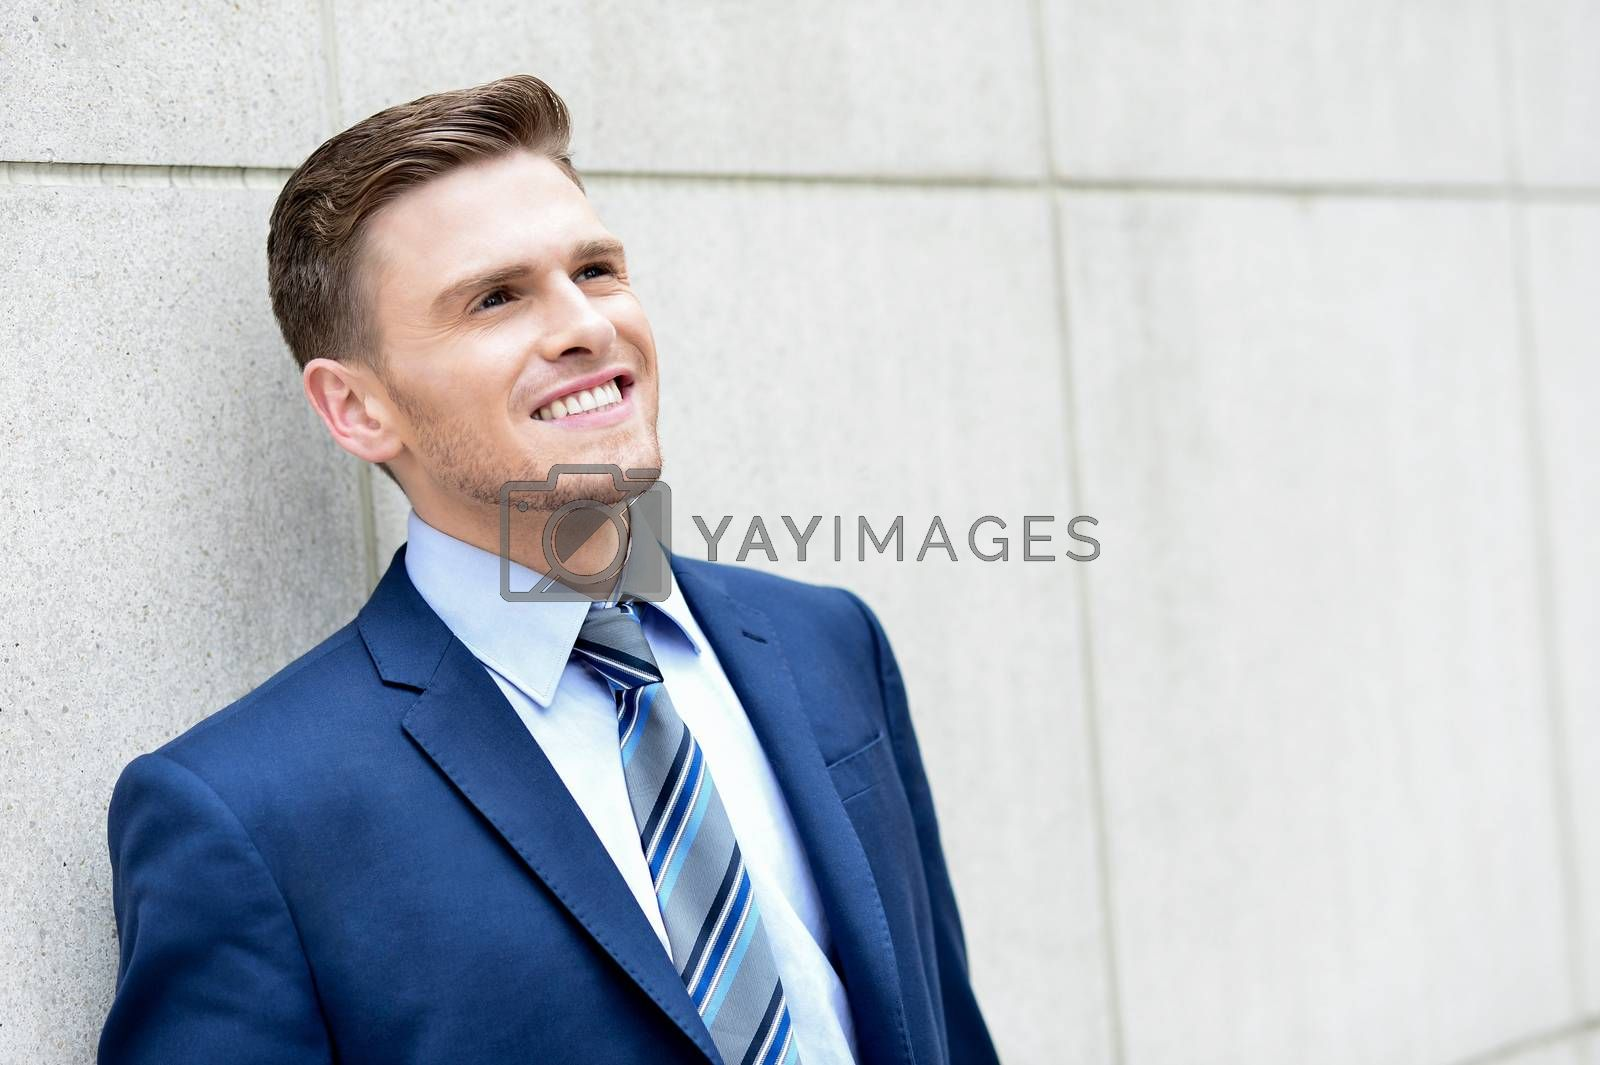 Royalty free image of Young business man posing outdoor by stockyimages